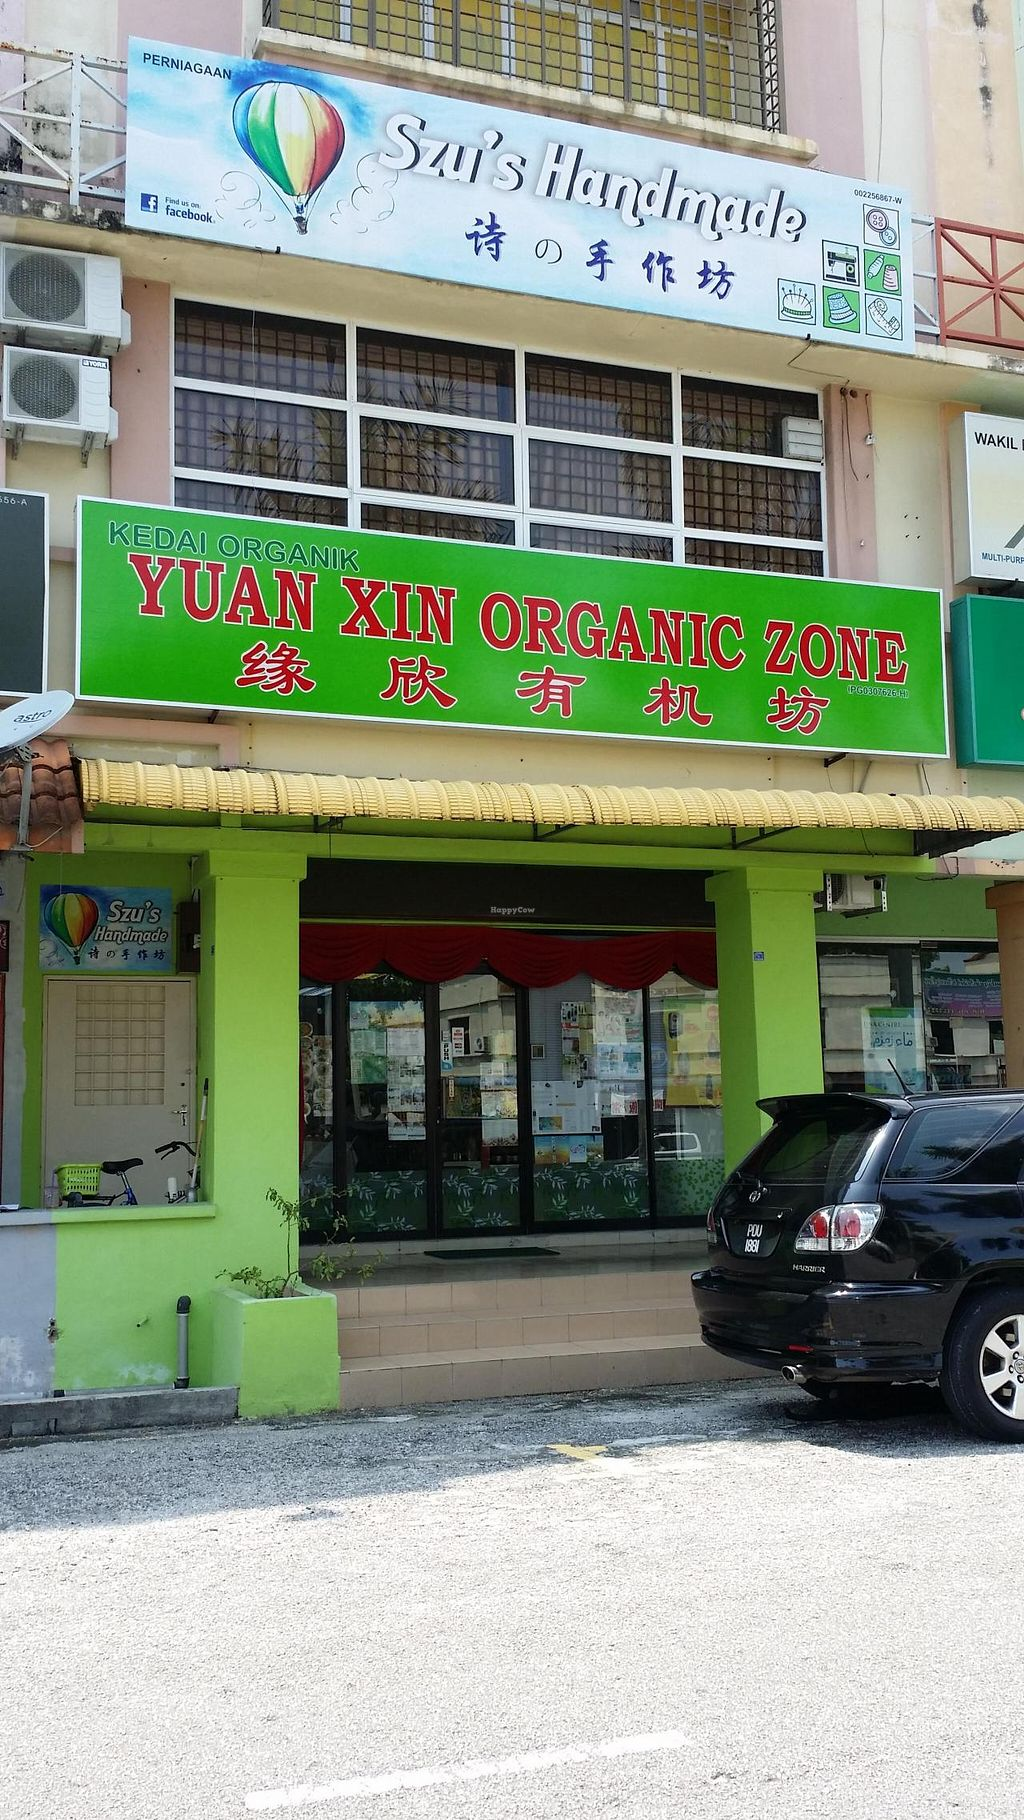 """Photo of Yuan Xin Organic Zone  by <a href=""""/members/profile/walter007"""">walter007</a> <br/>Shop <br/> July 5, 2014  - <a href='/contact/abuse/image/48600/73294'>Report</a>"""